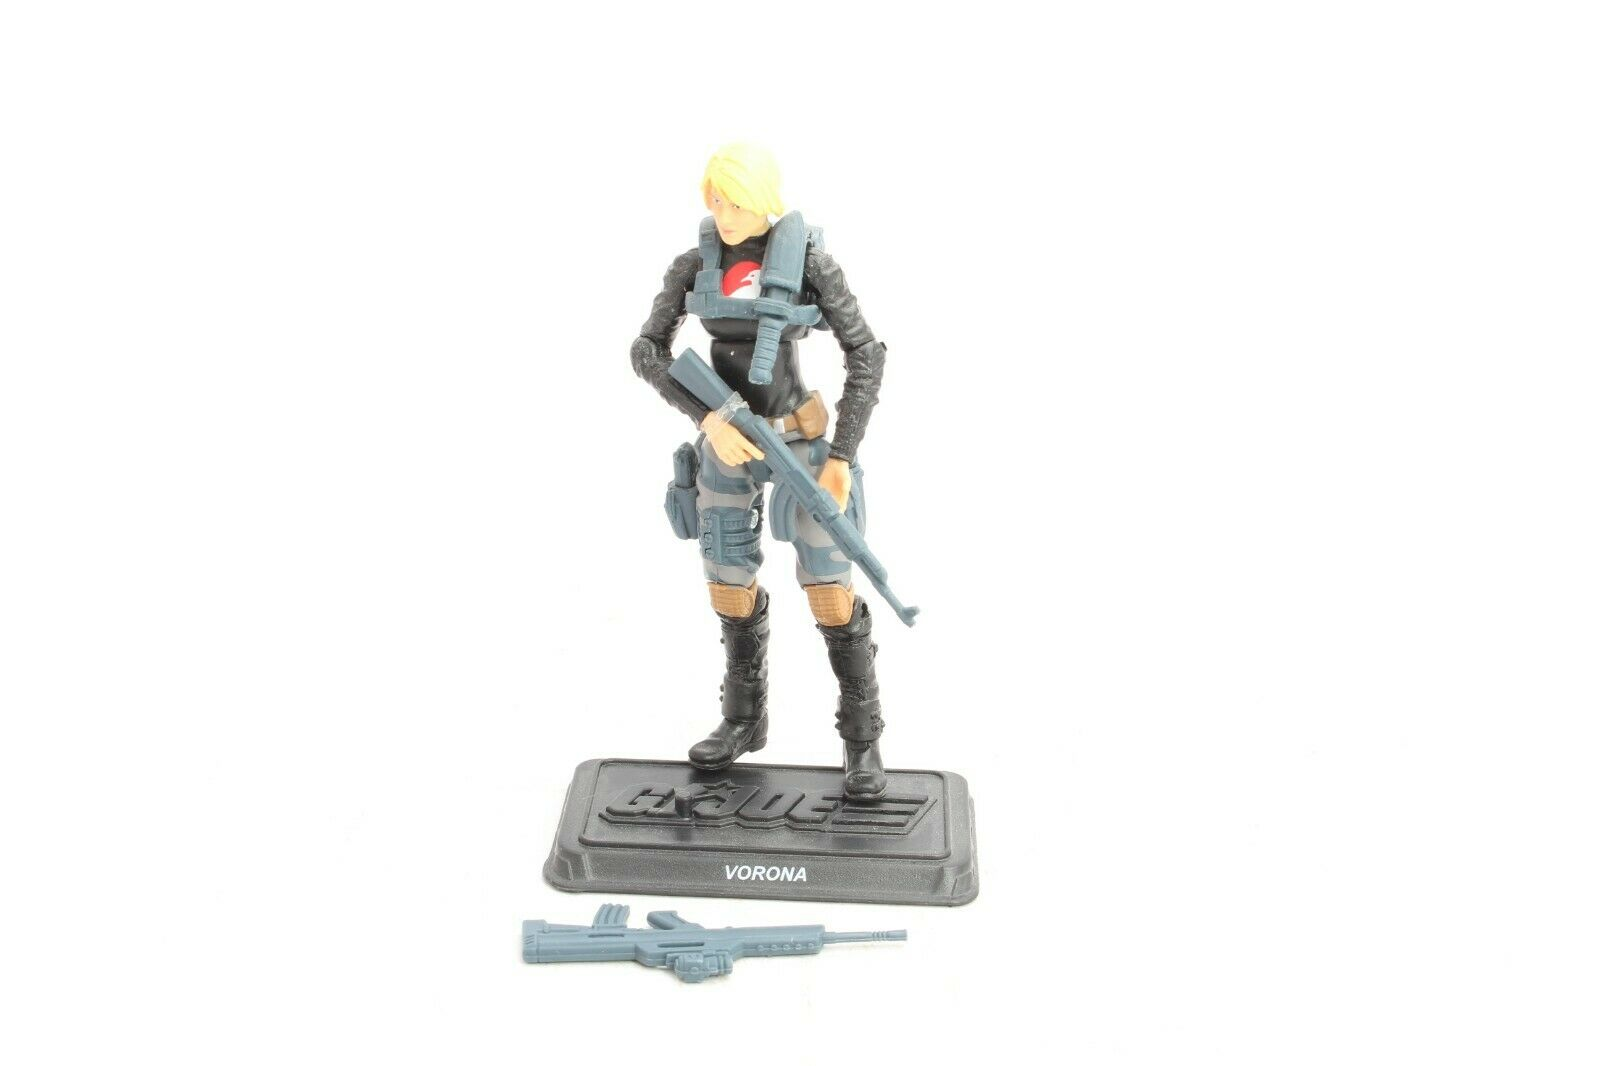 Gi Joe Vorona 25th aniversario Collector's Club Exclusivo